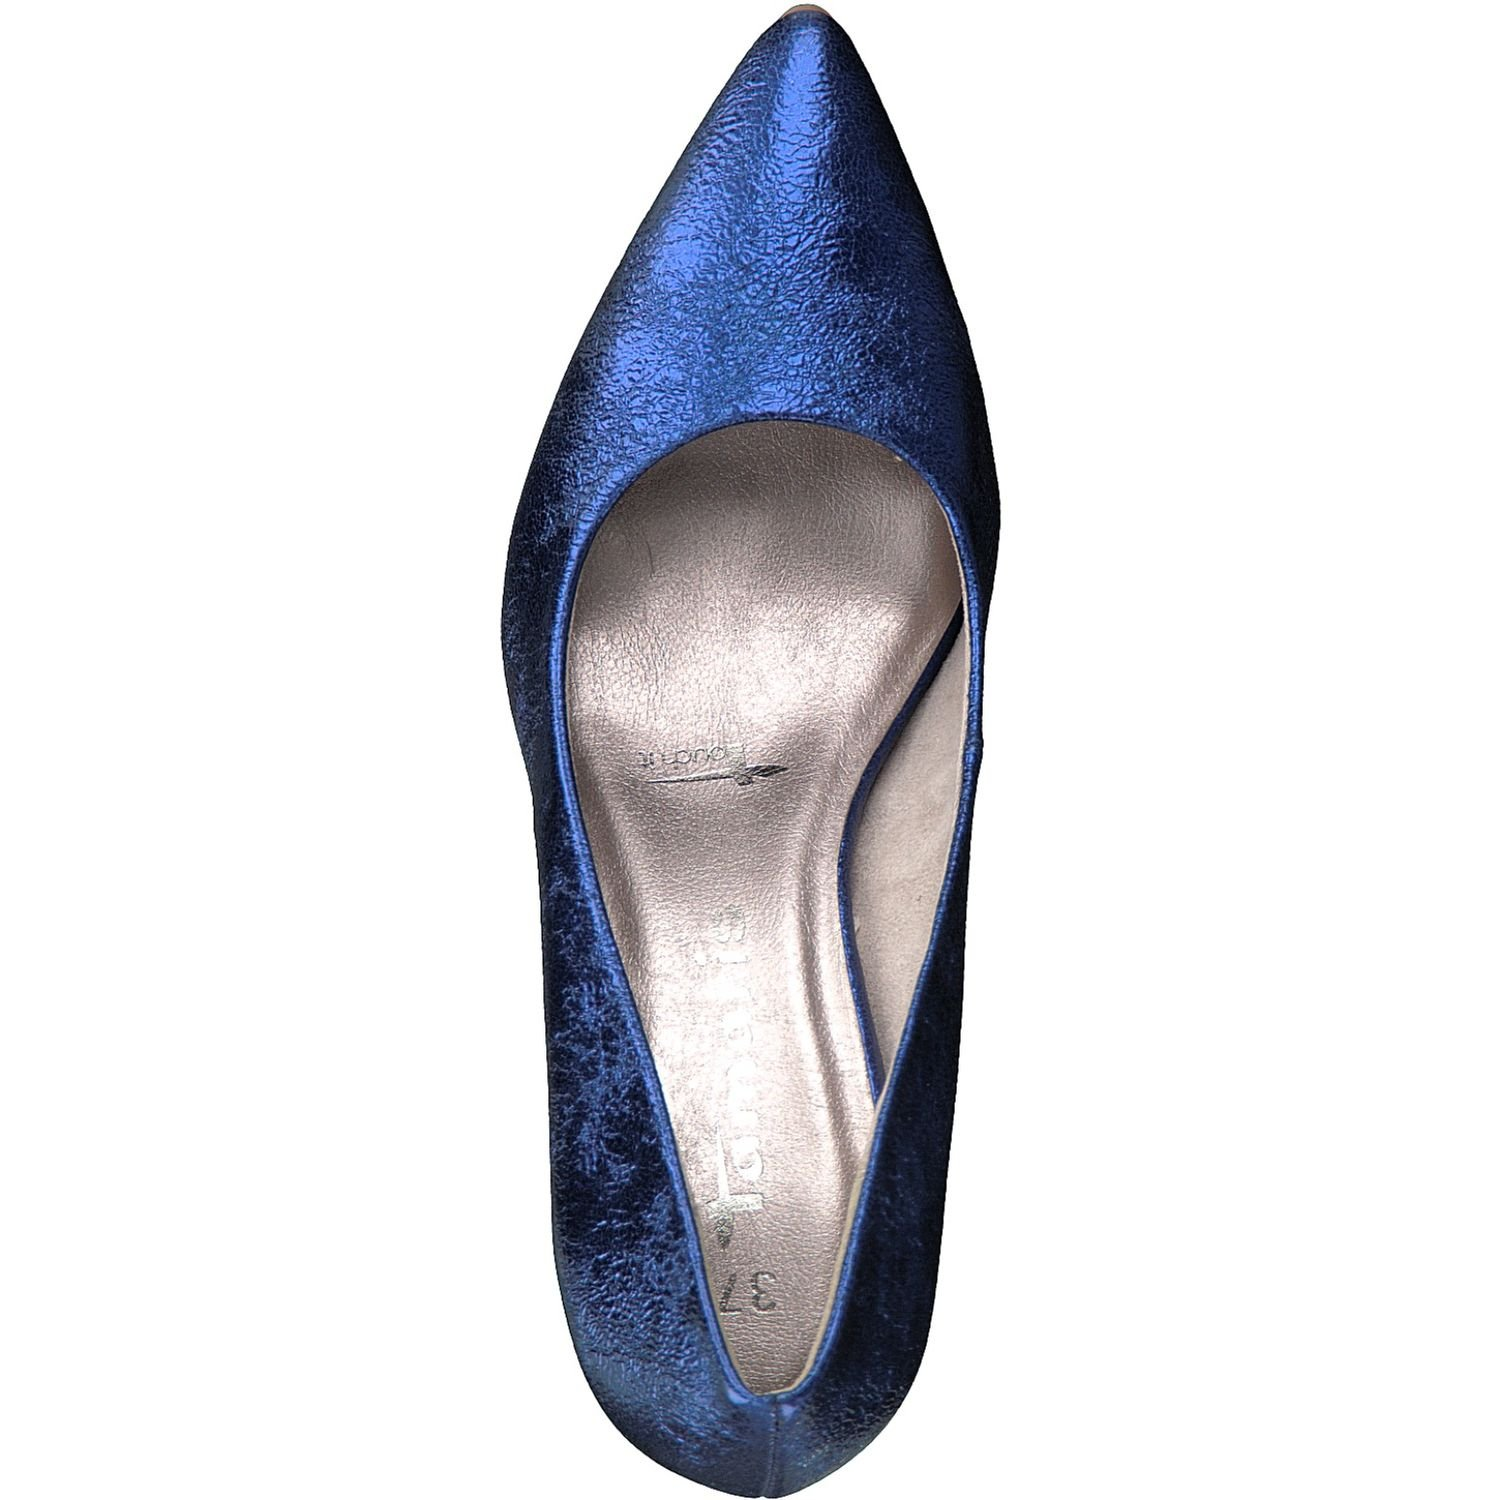 Tamaris Damen Pumps 1 1 22427 20850 blau 401419